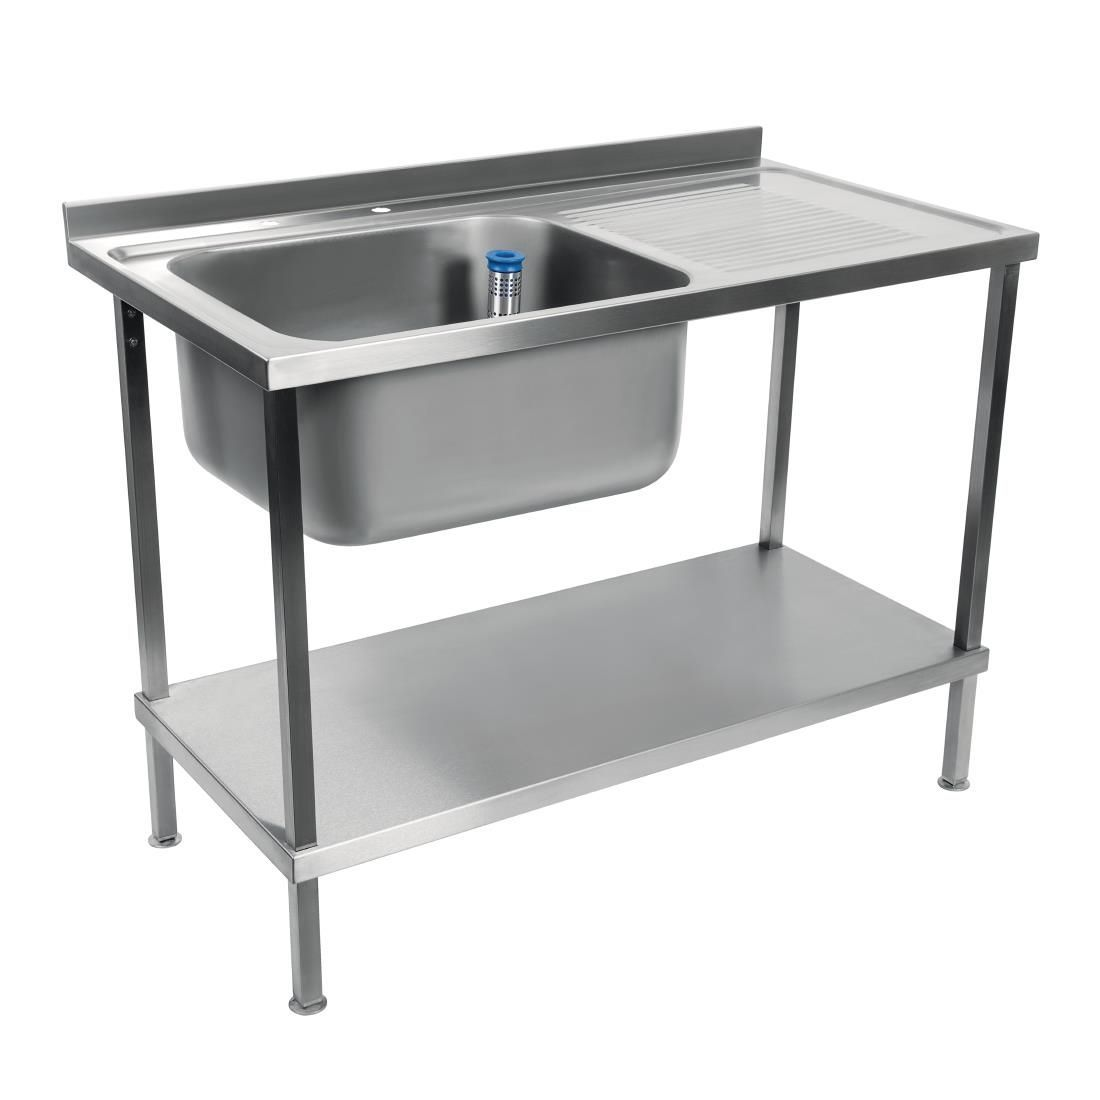 Holmes Self Assembly Stainless Steel Sink Right Hand Drainer 1500mm - DR370